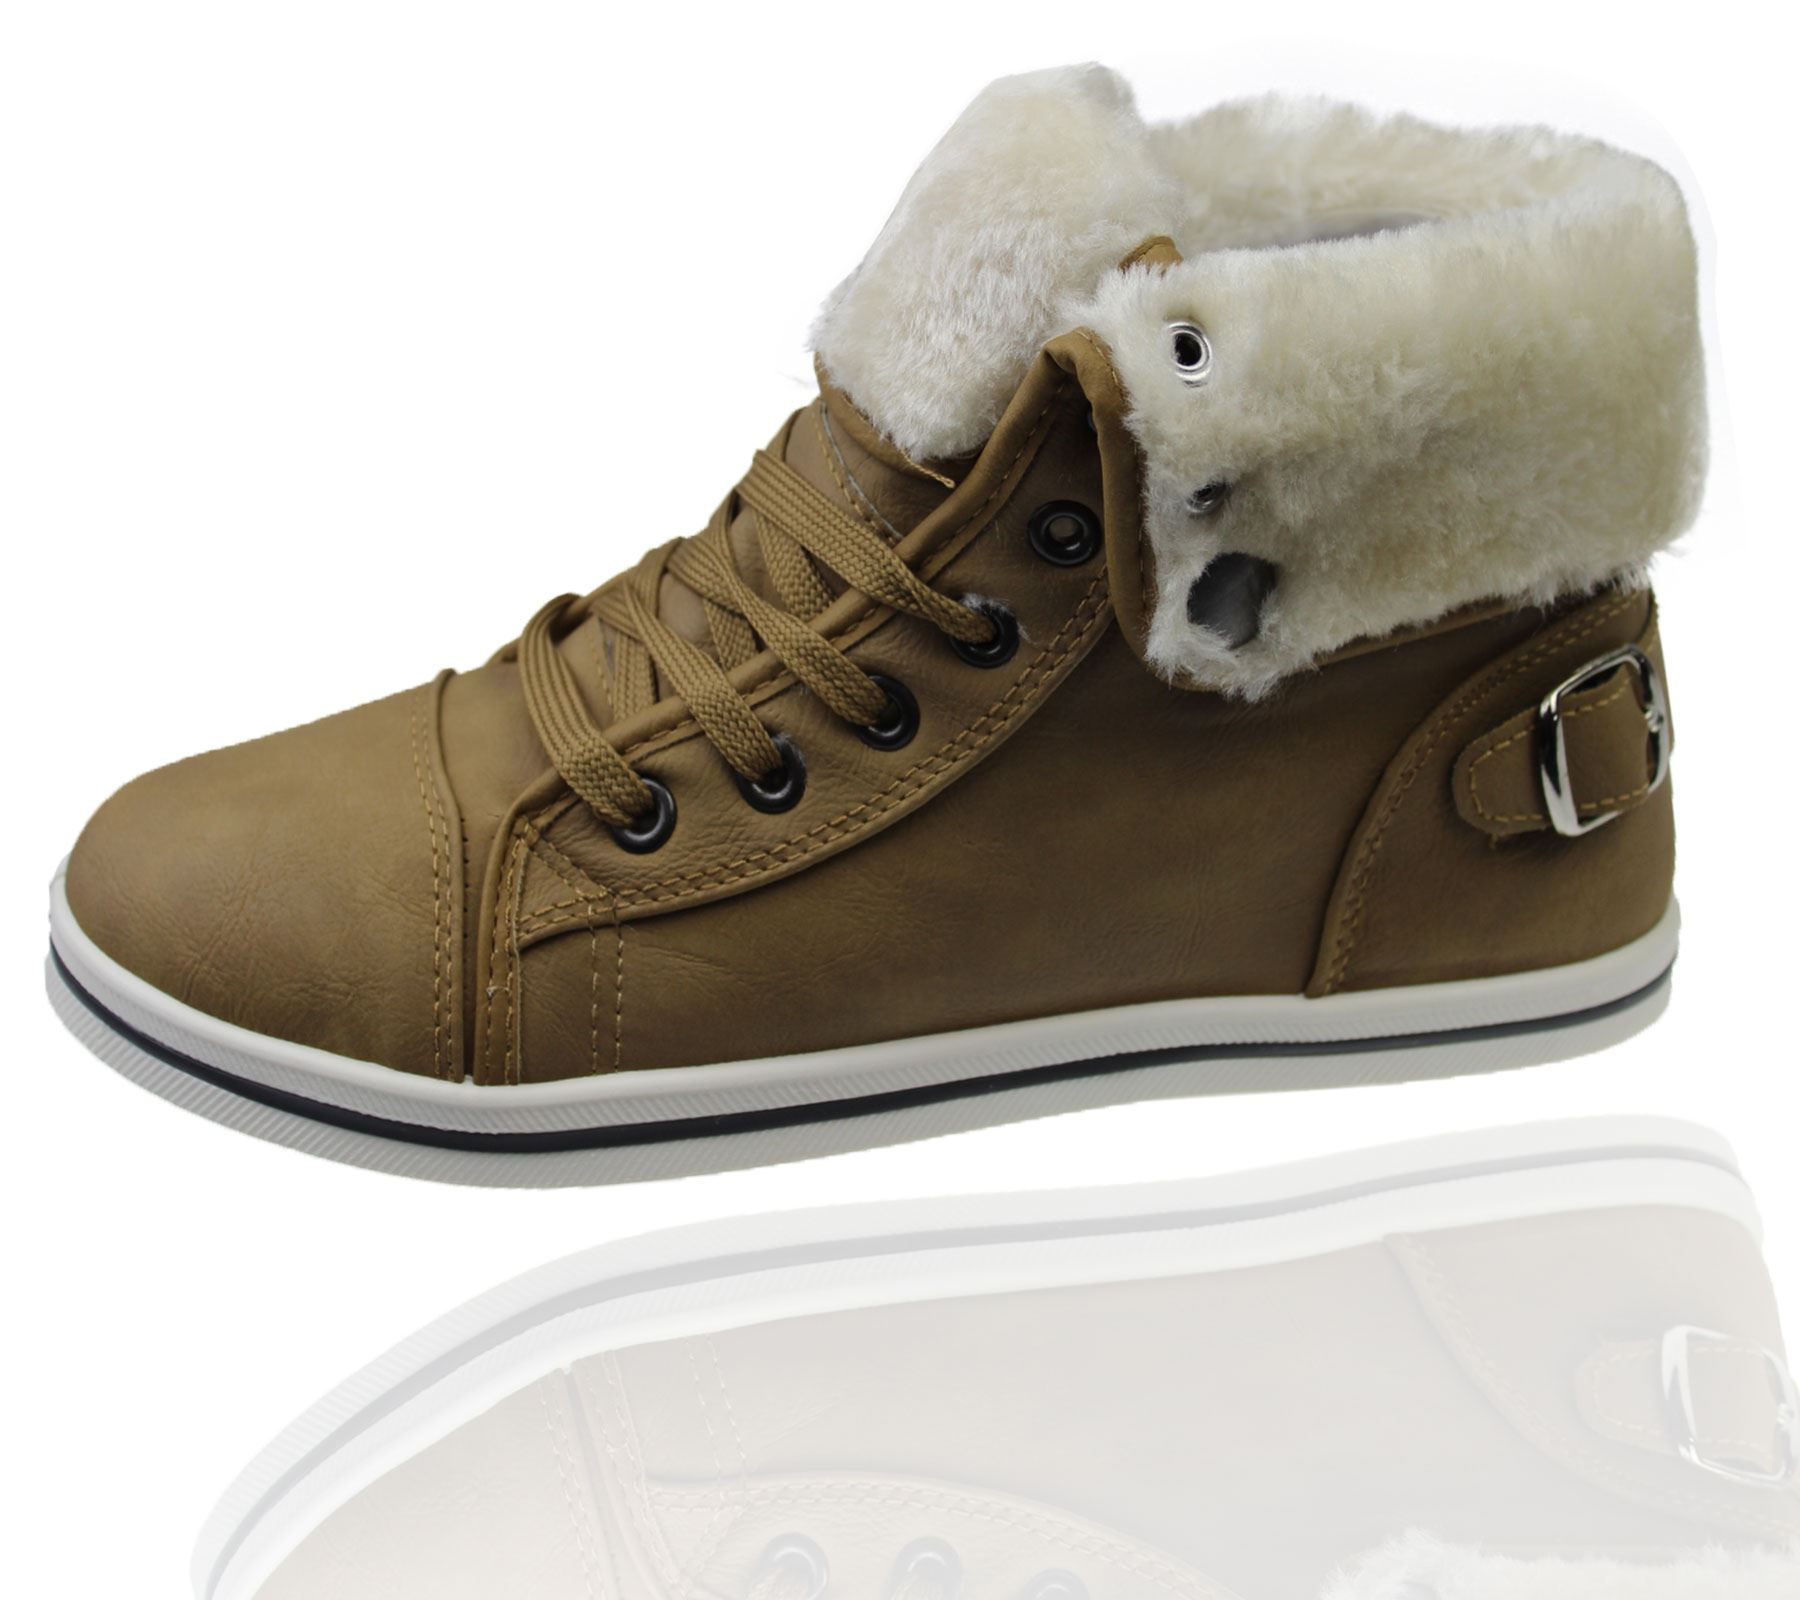 Girls-Boots-Womens-Warm-Lined-High-Top-Ankle-Trainer-Ladies-Winter-Shoes-Size miniatura 7